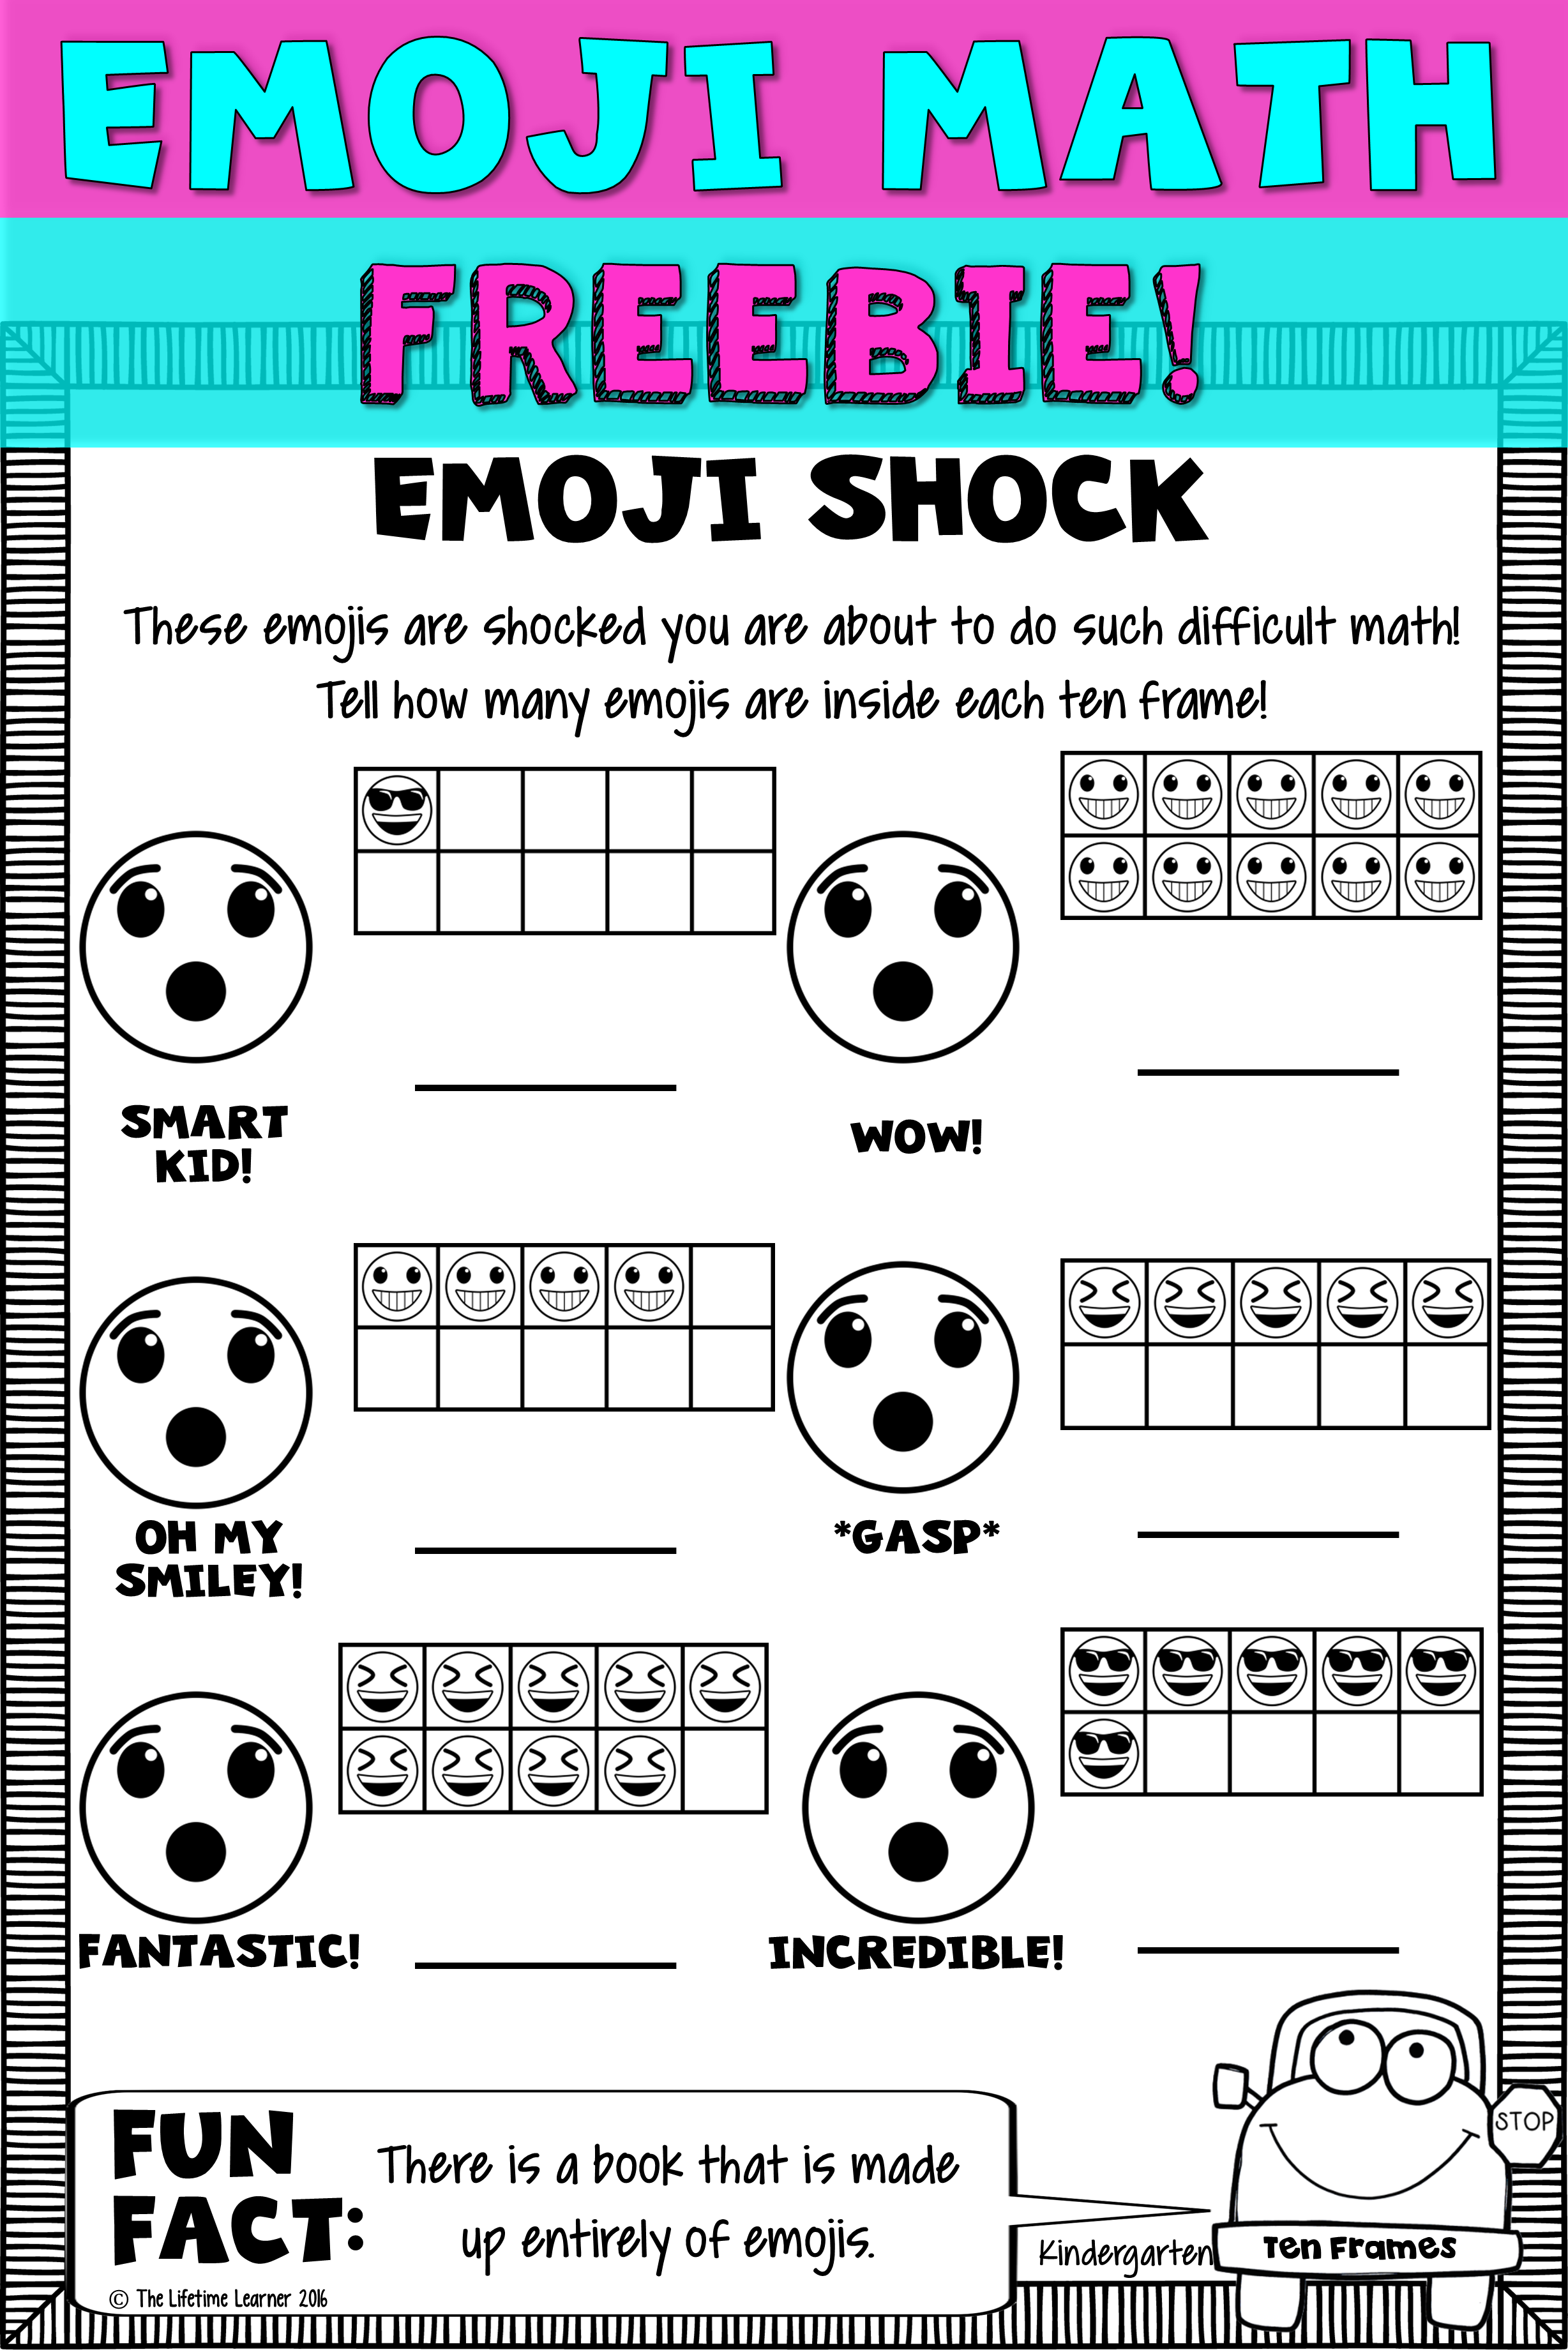 Kindergarten math is more fun with emojis! This freebie has 1 free ...